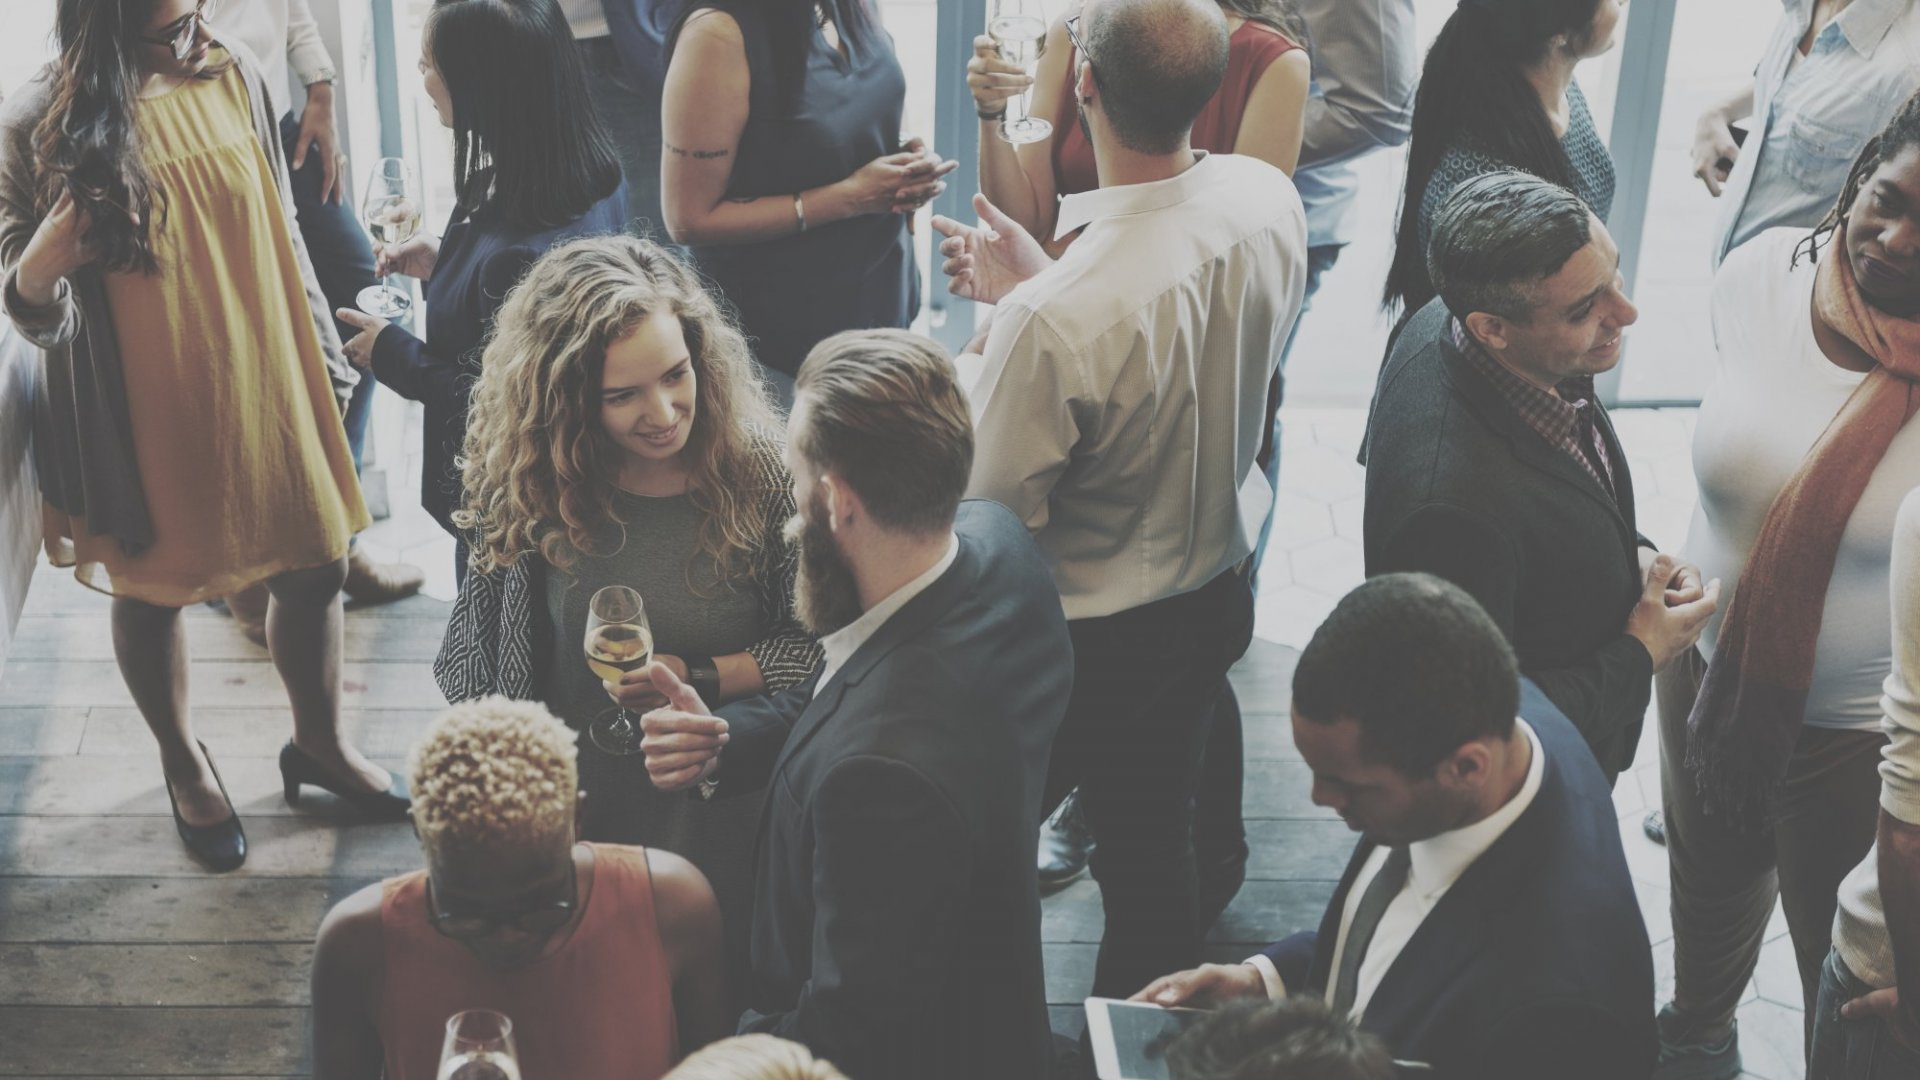 How To Avoid Boring Holiday Party Conversations With These 20 Professional Conversation Starters